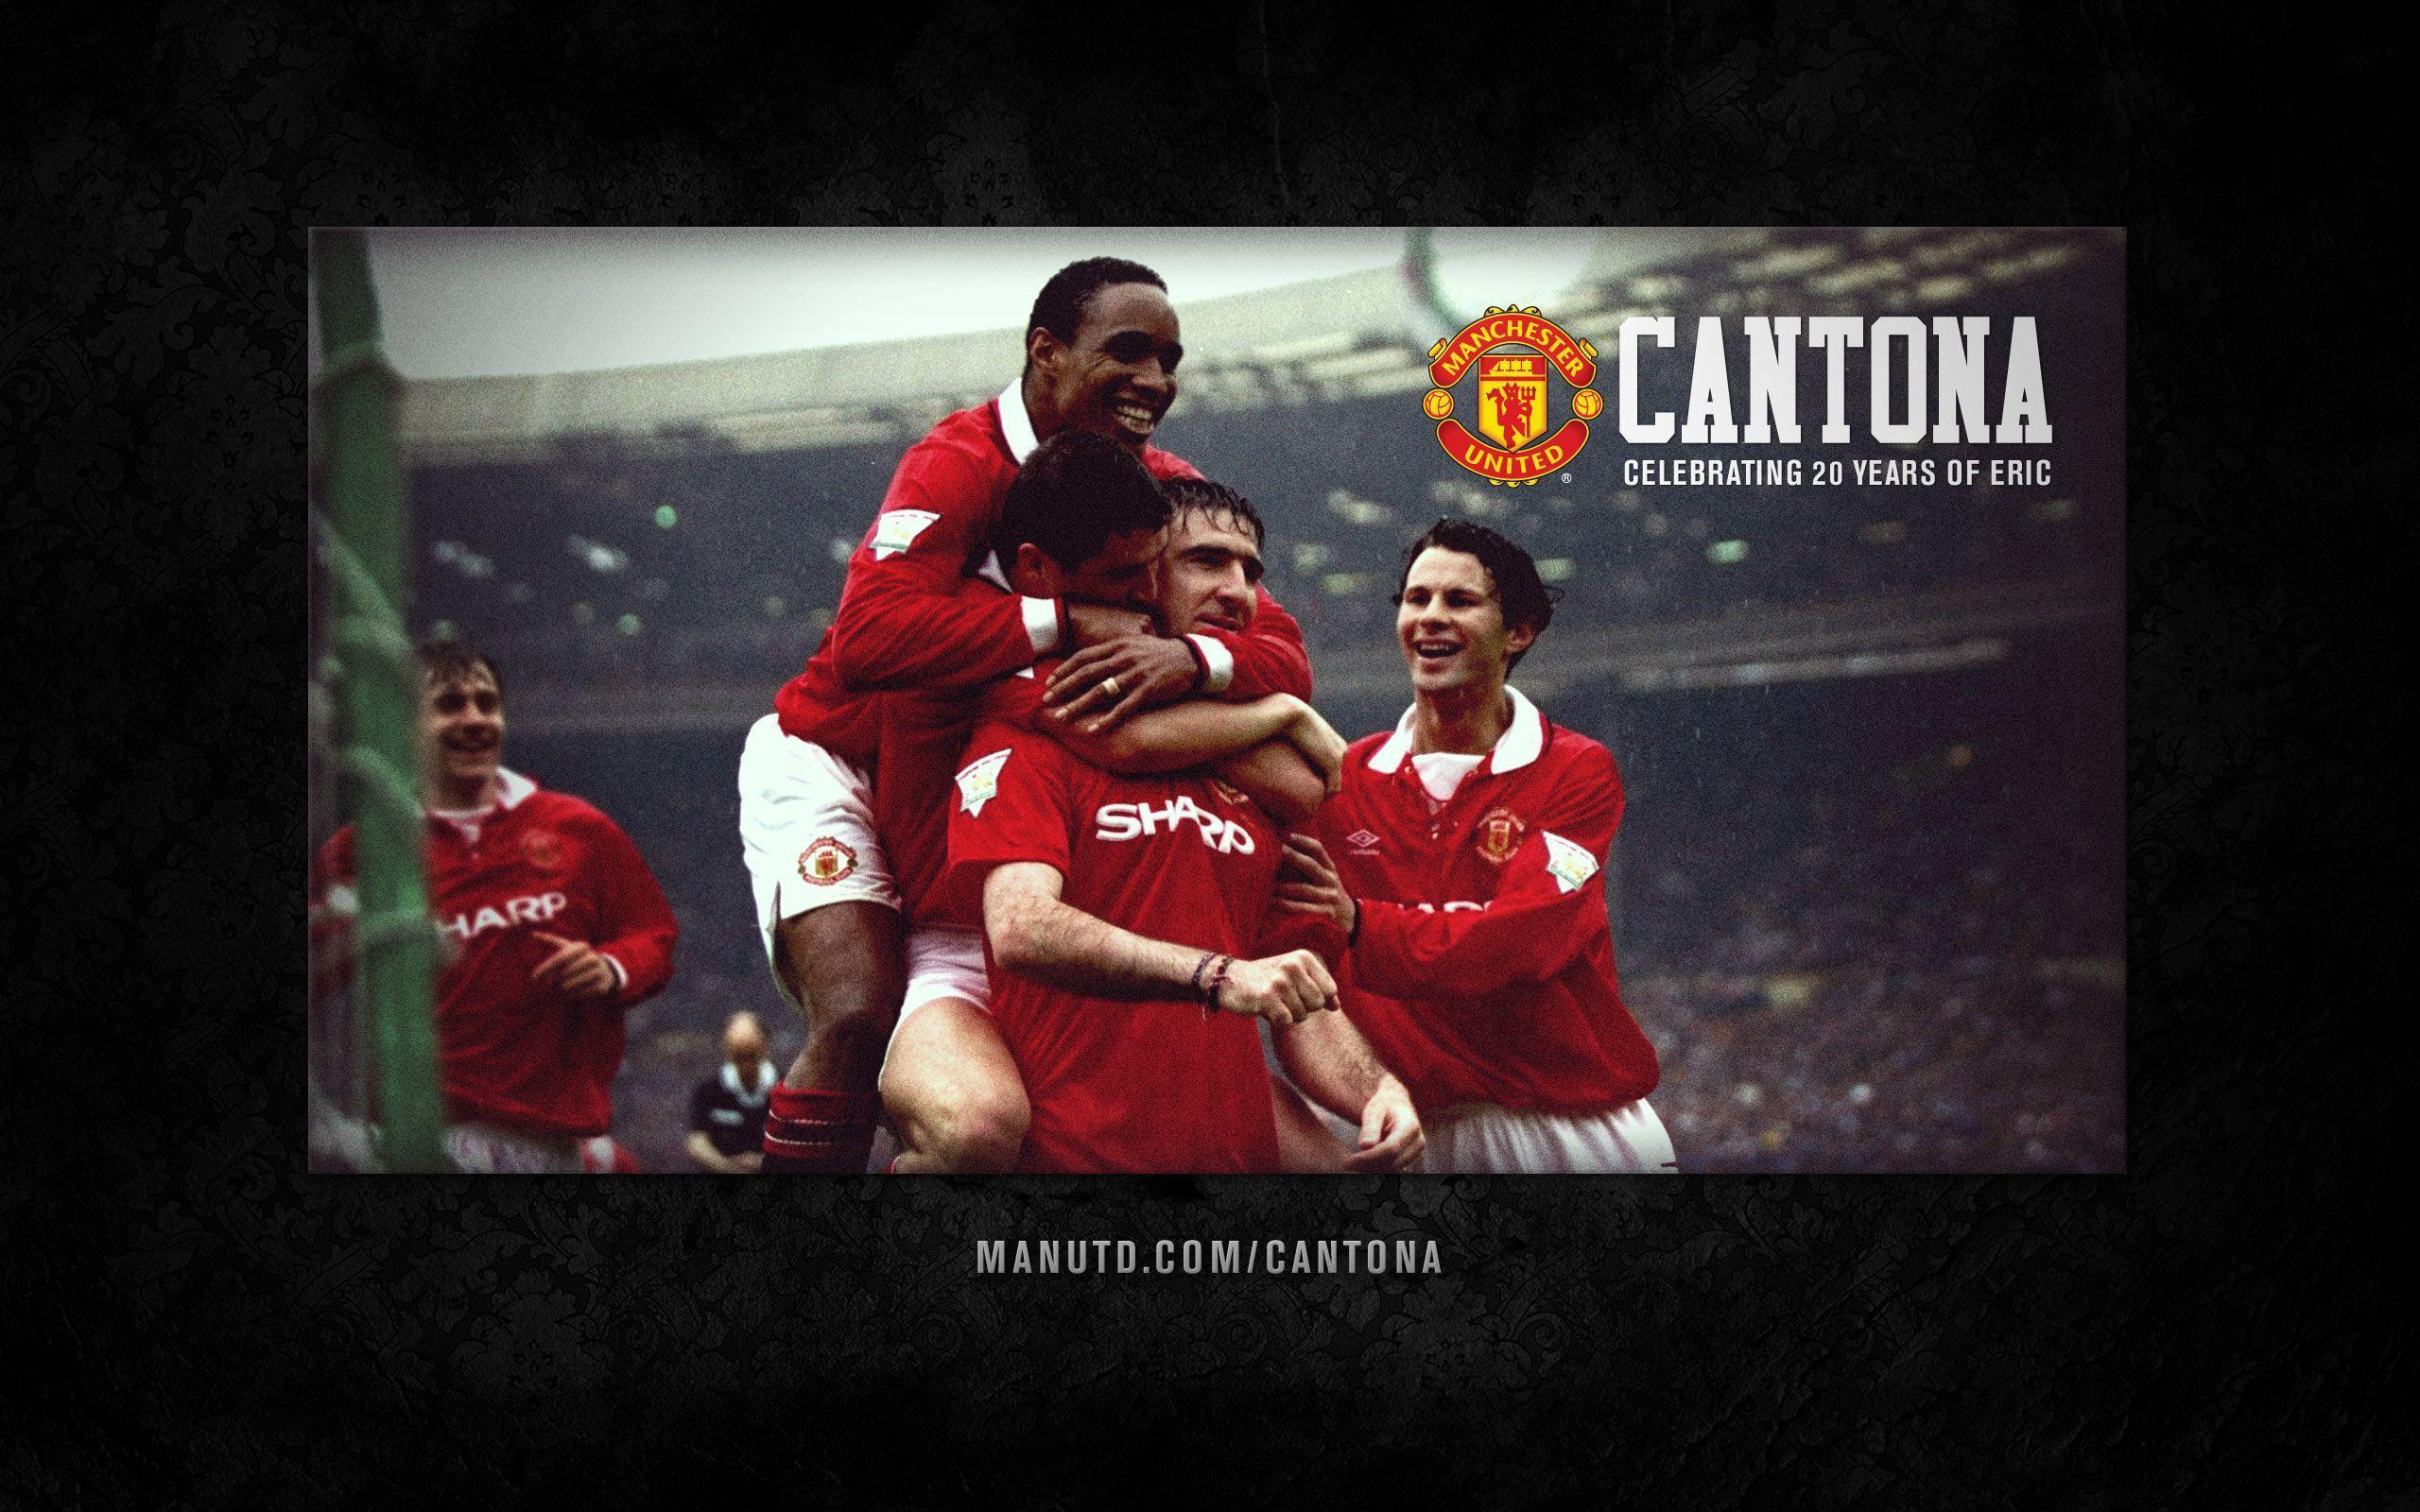 Phil lynott funny vintage ads, vintage humor, eric cantona, manchester united. Eric Cantona Wallpapers - Wallpaper Cave